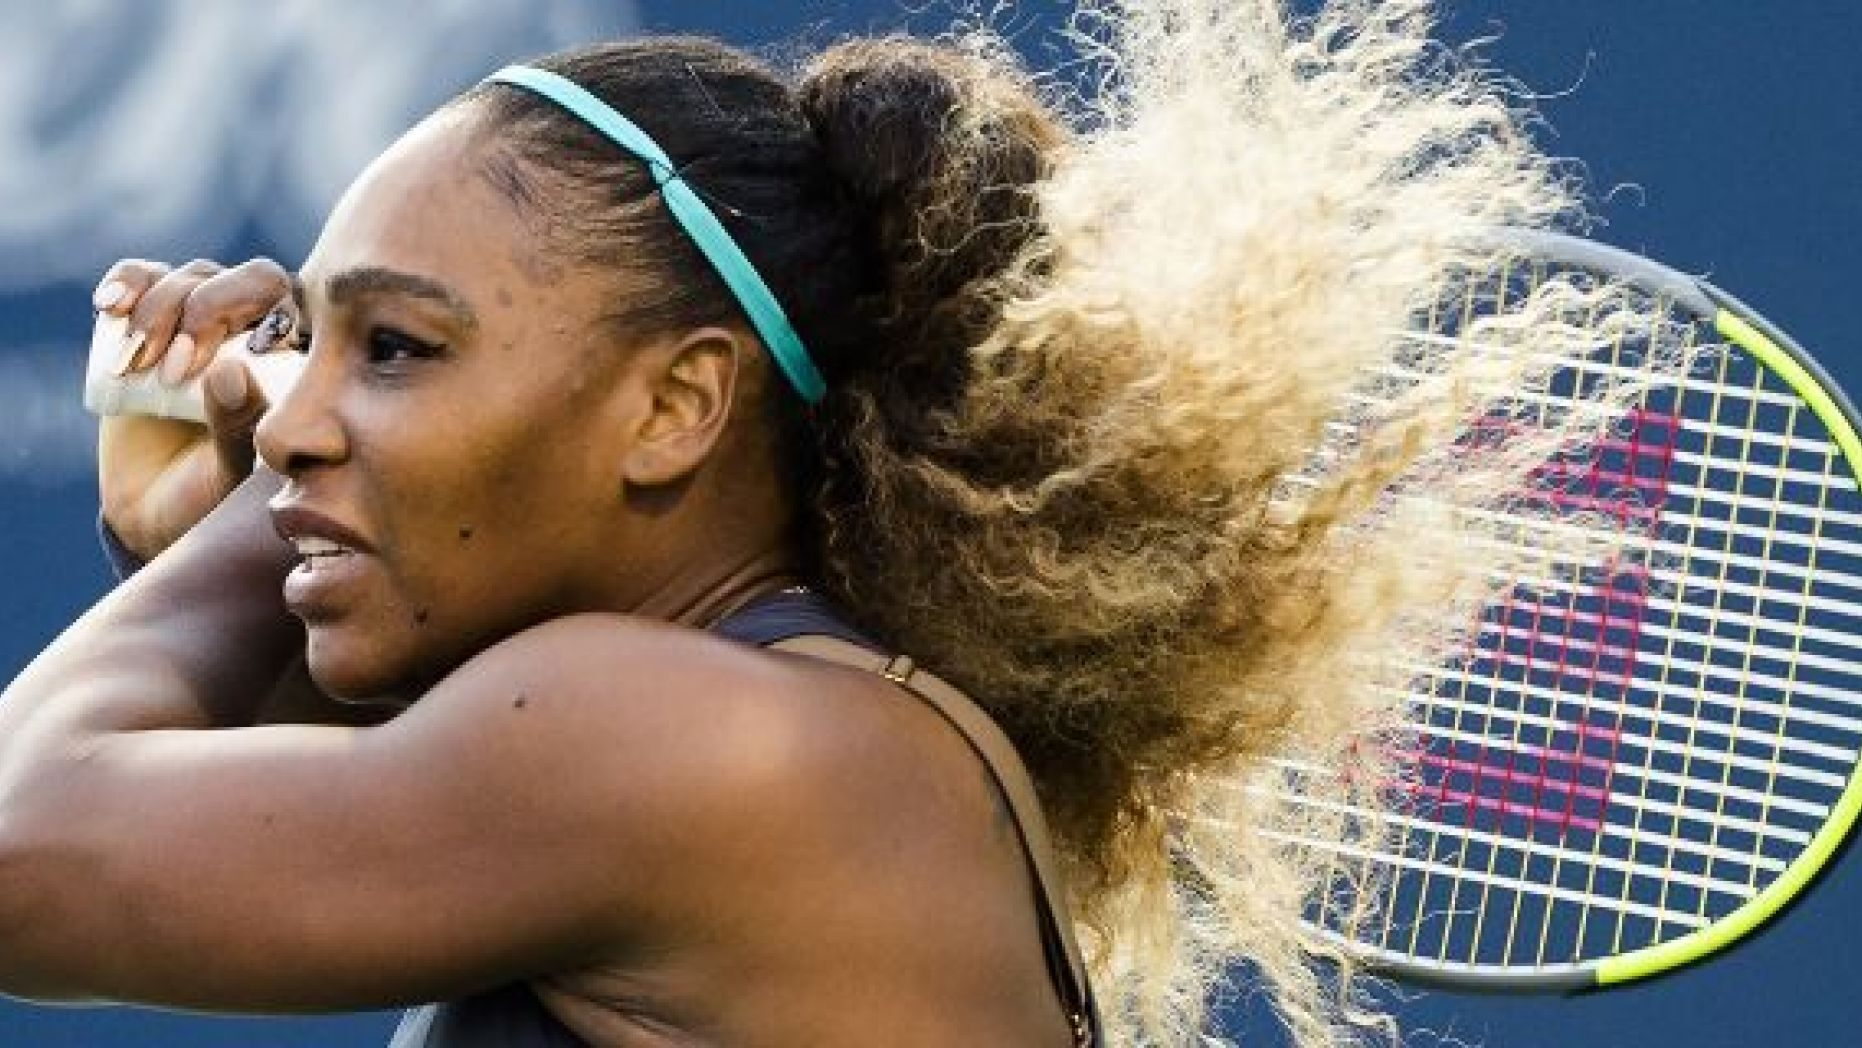 Serena Williams, of the United States, watches a return to Ekaterina Alexandrova, of Russia, during the Rogers Cup women's tennis tournament Thursday, Aug. 8, 2019, in Toronto. (Nathan Denette/The Canadian Press via AP)